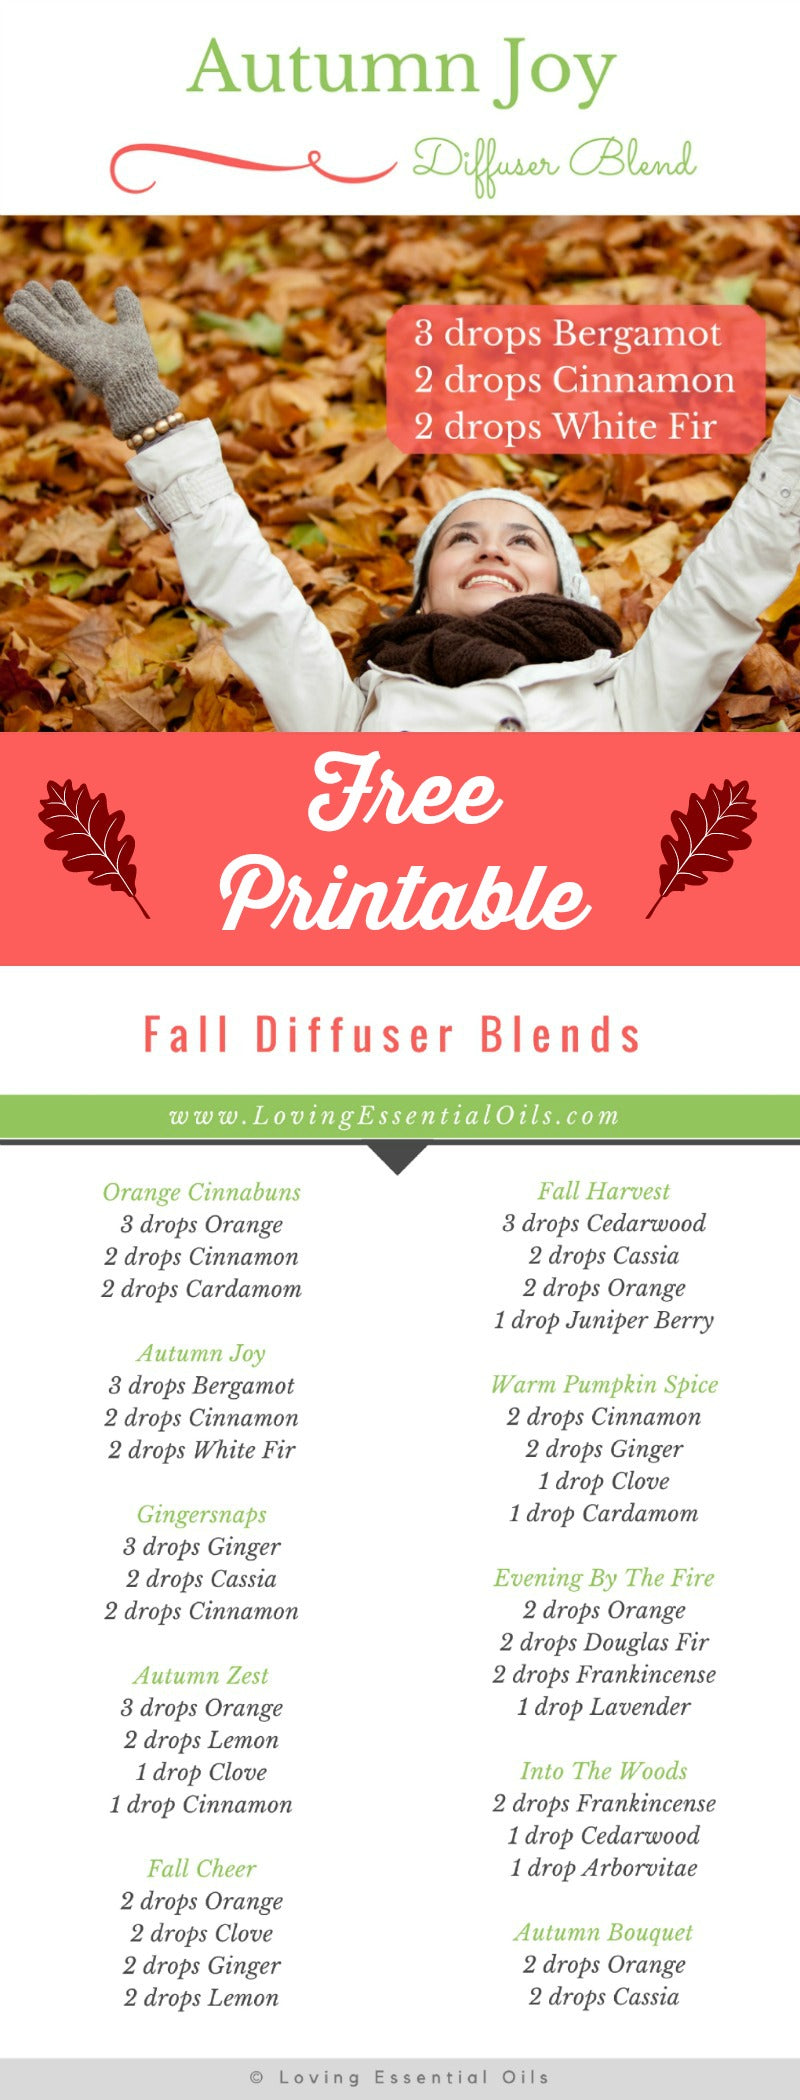 Autumn Joy - Essential Oil Diffuser Blends For Fall by Loving Essential Oils